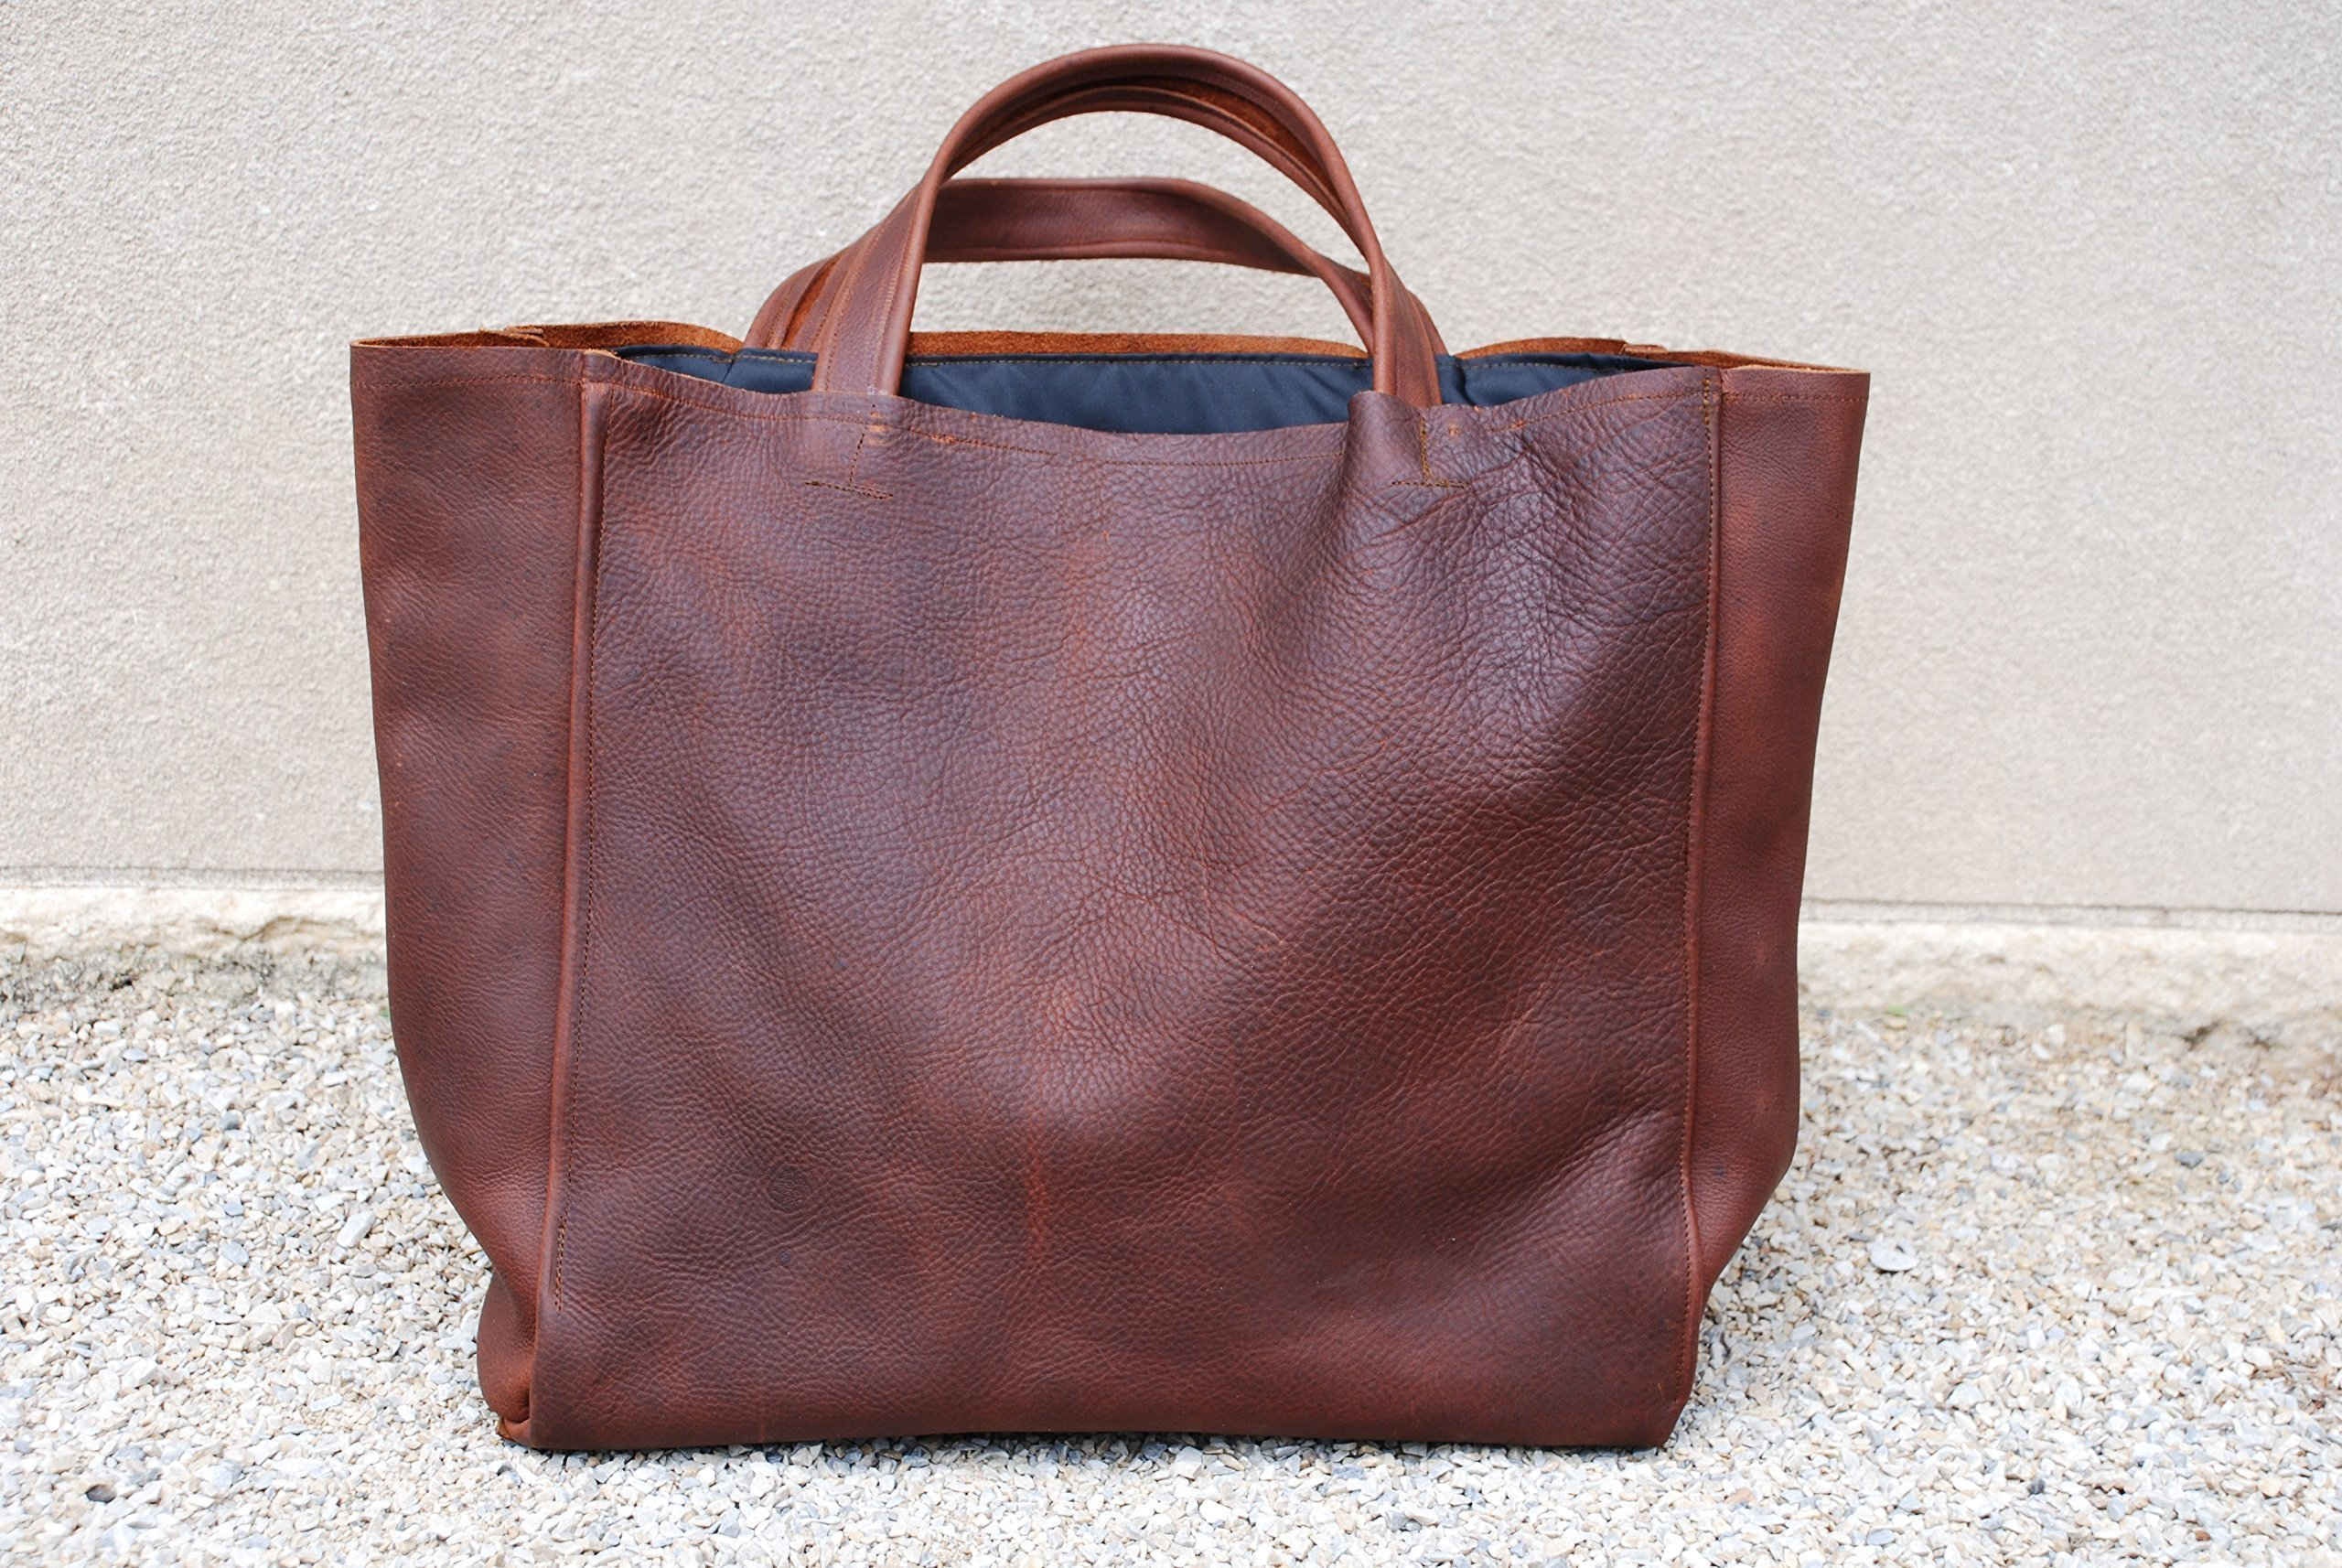 CAYENNE BROWN LEATHER TOTE / SHOPPER